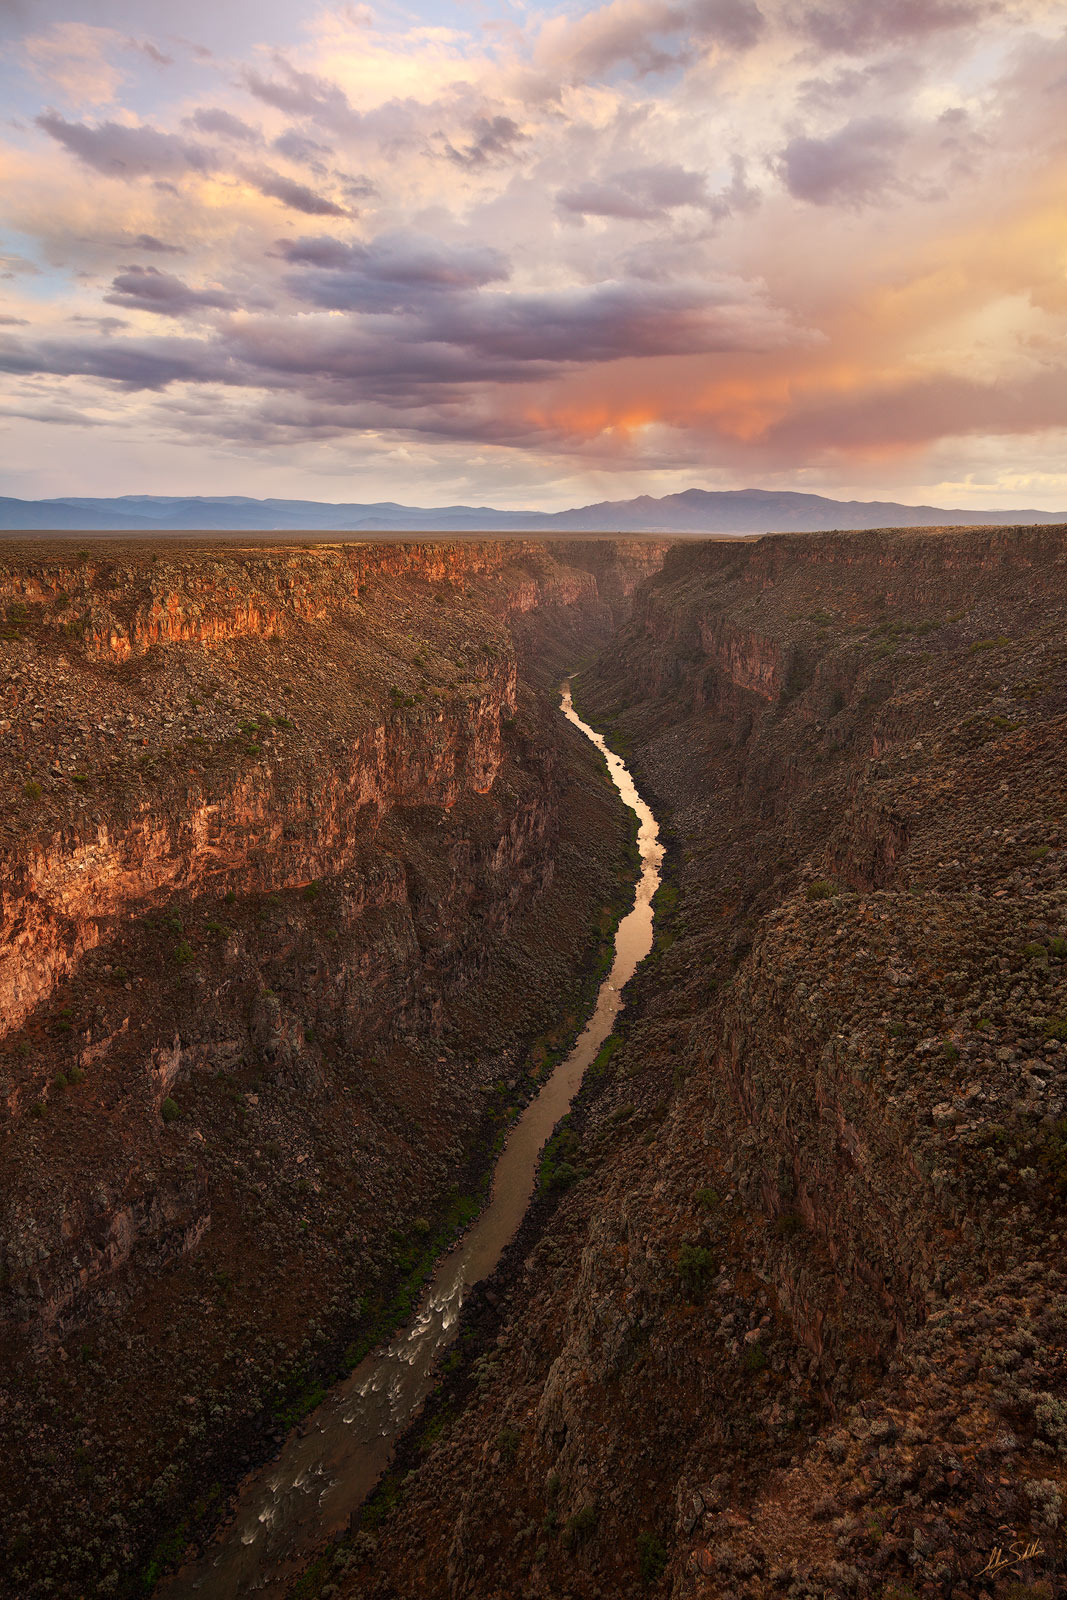 Sunset over the Rio Grande Gorge near Taos, New Mexico. This section of the river is now part of the Rio Grande del Norte National Monument.